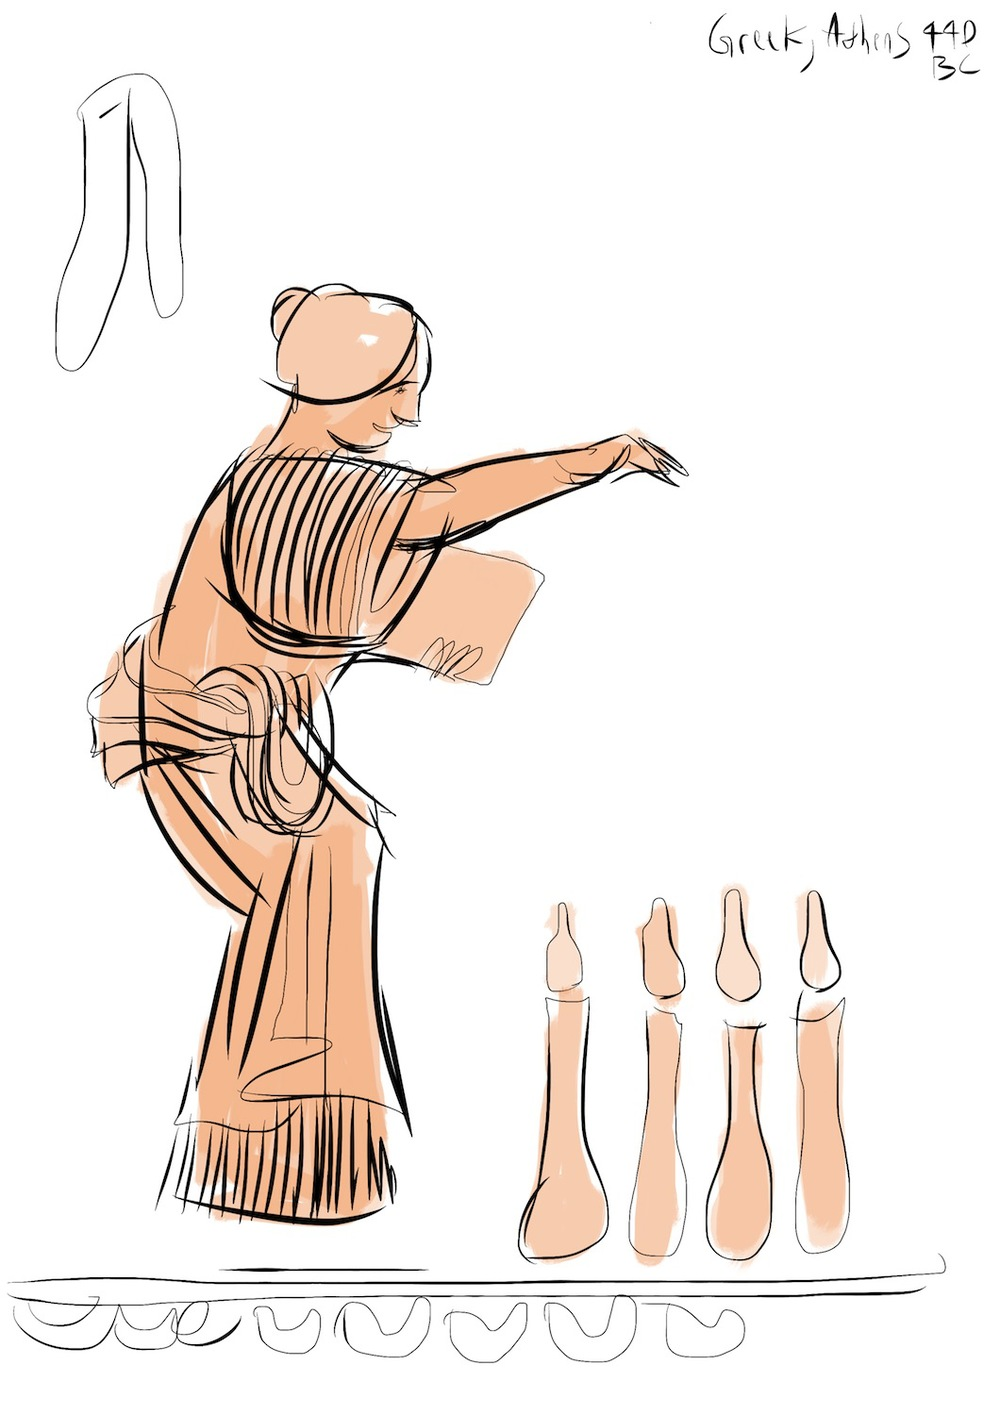 13-08-15 - digital drawing - greek sculpture - 16.jpg